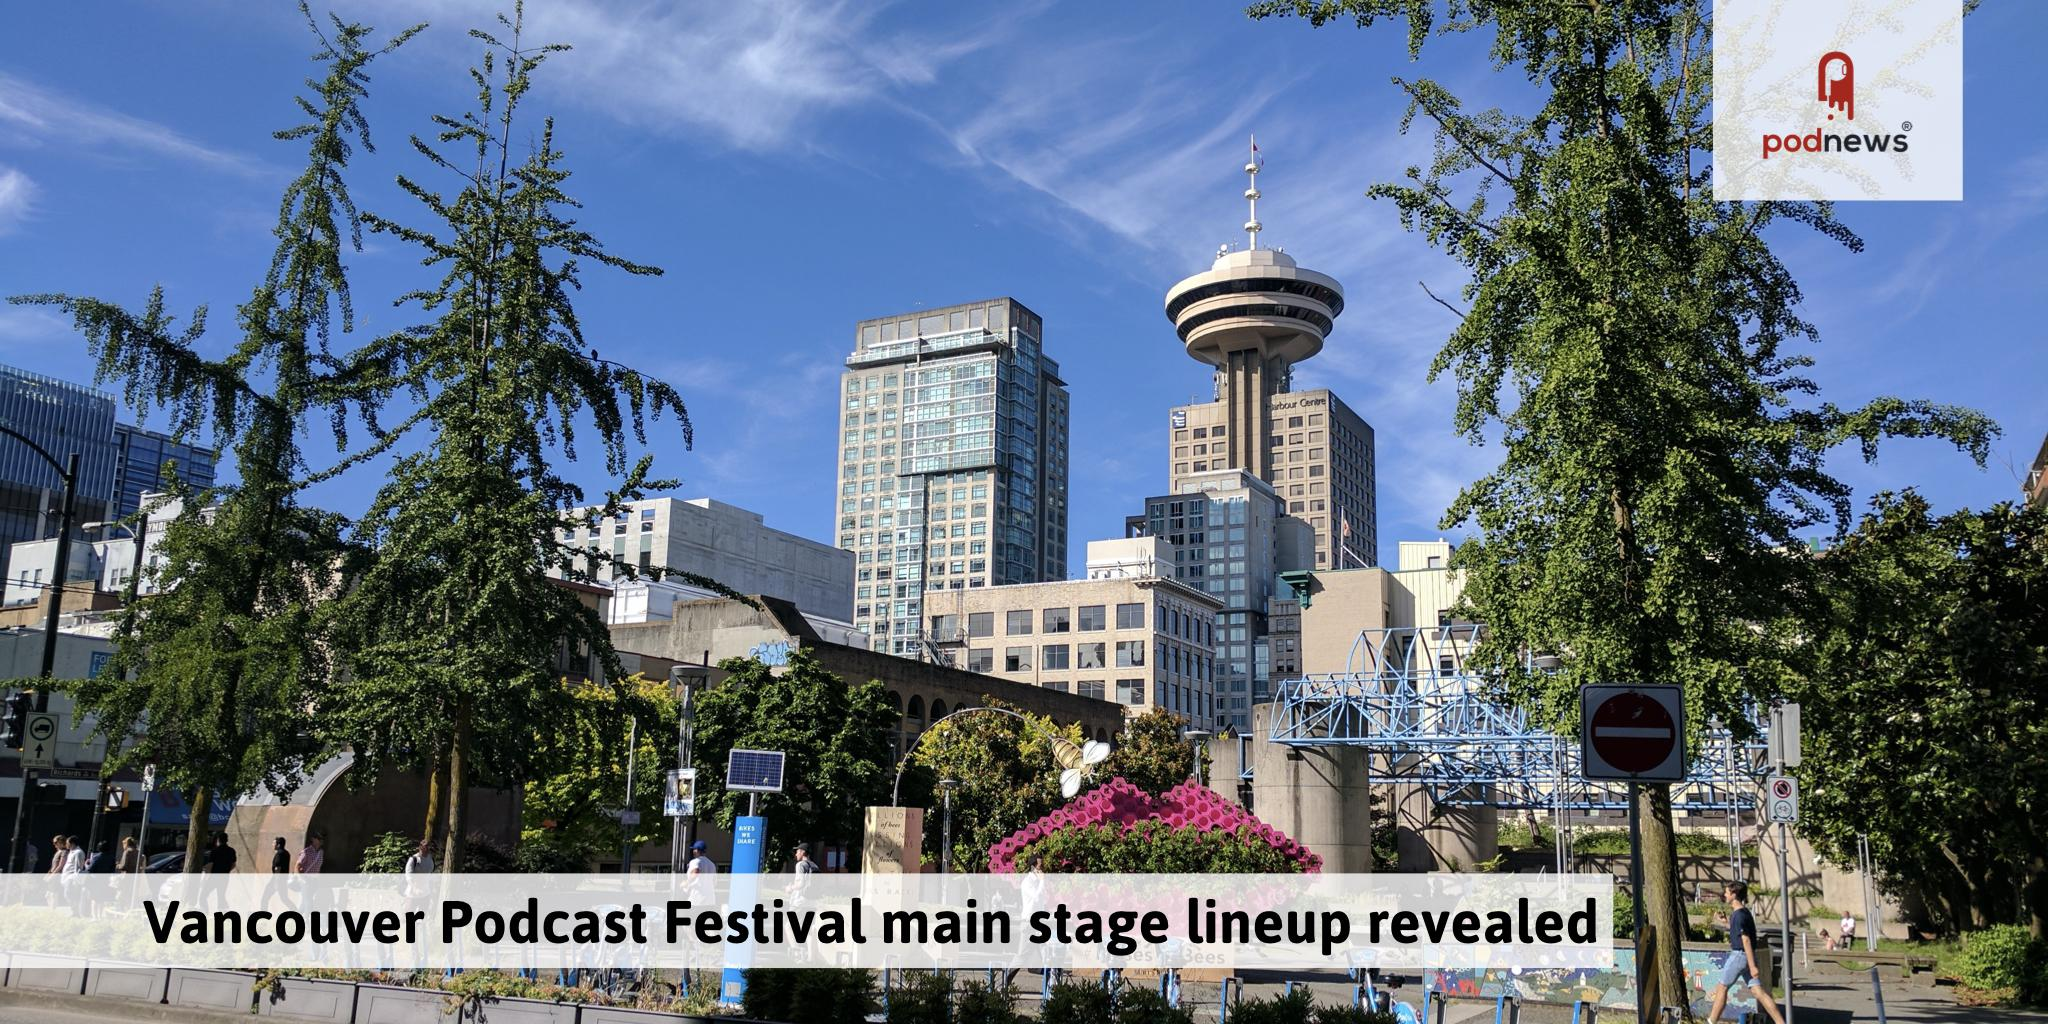 Second Annual Vancouver Podcast Festival Mainstage Lineup Revealed